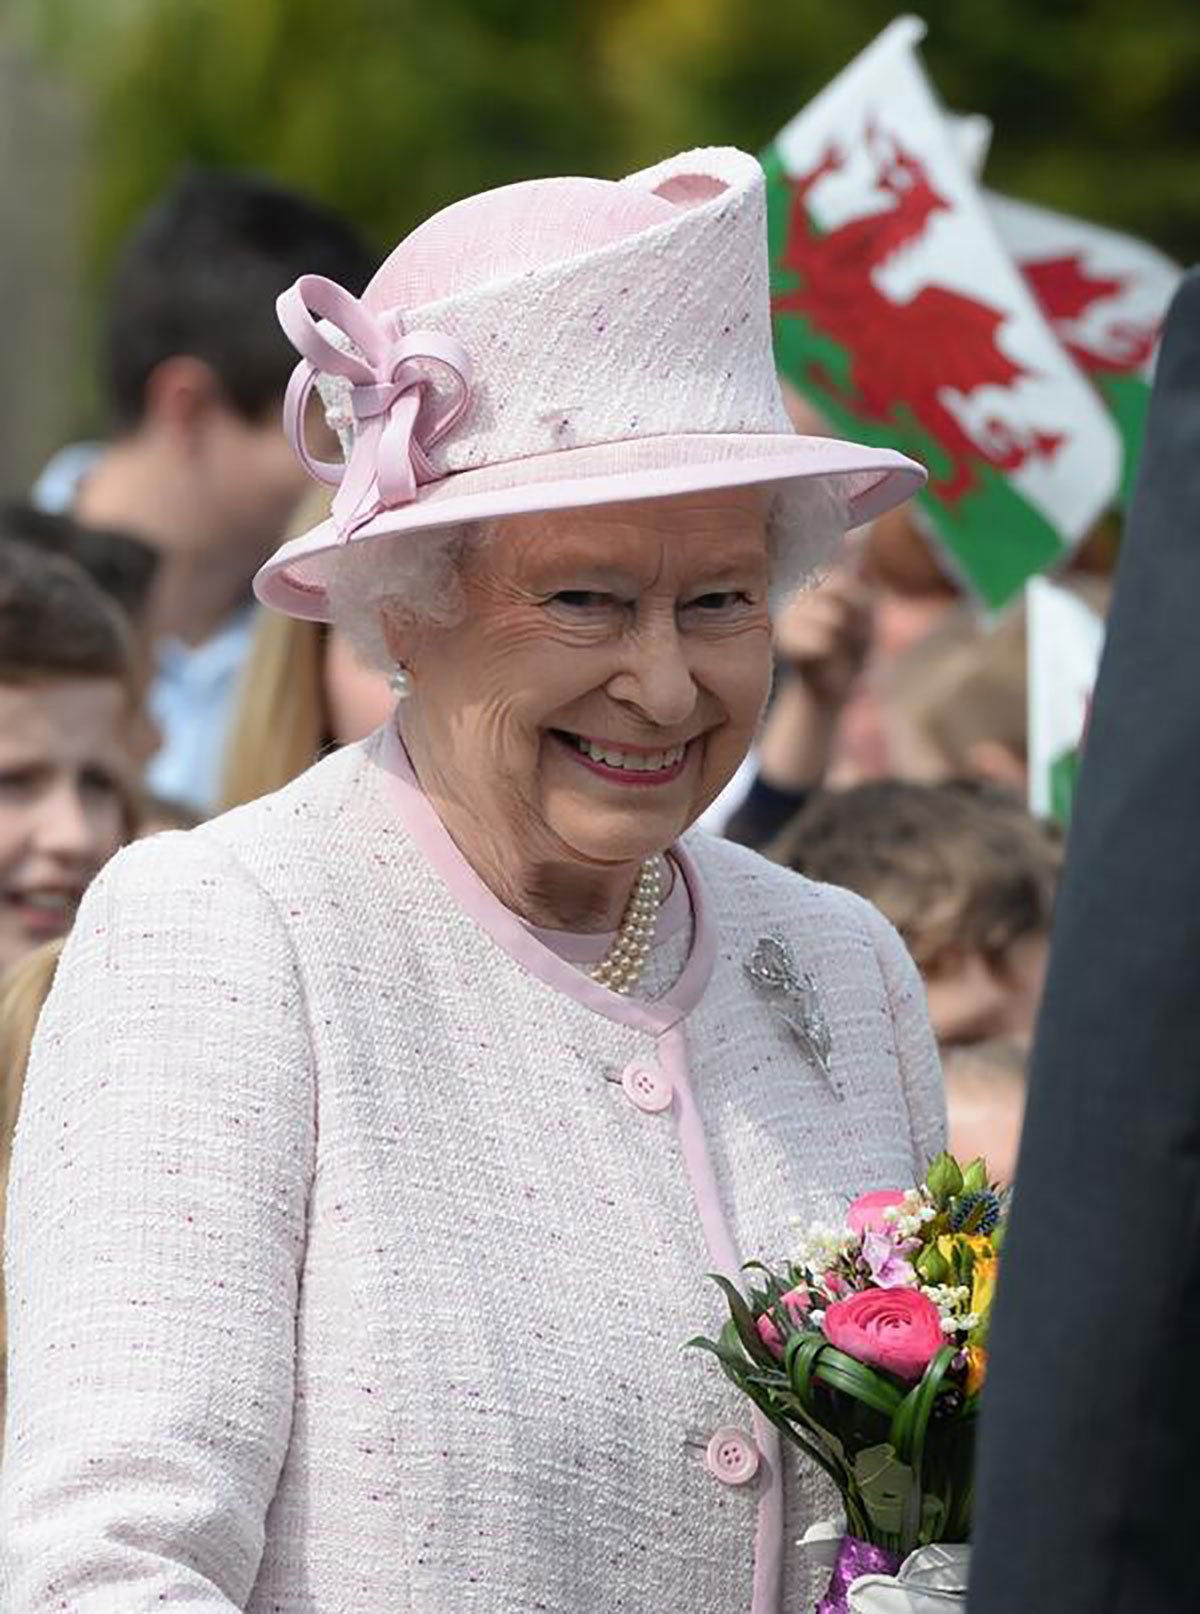 LIVE: Queen comes to Ystrad Mynach